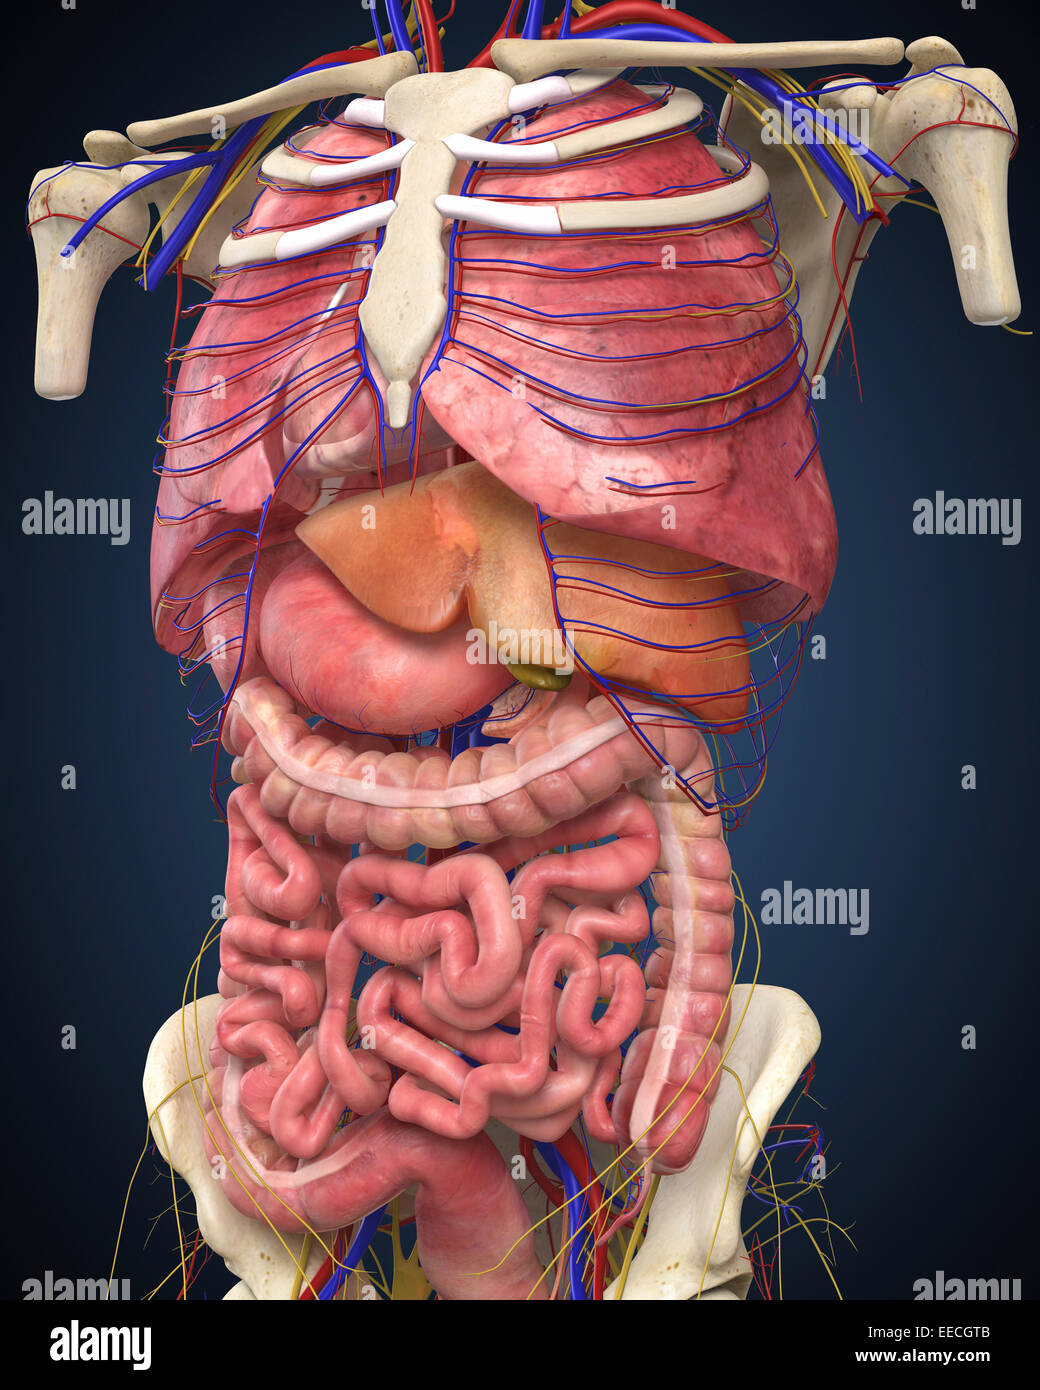 Midsection view showing internal organs of human body Stock Photo ...